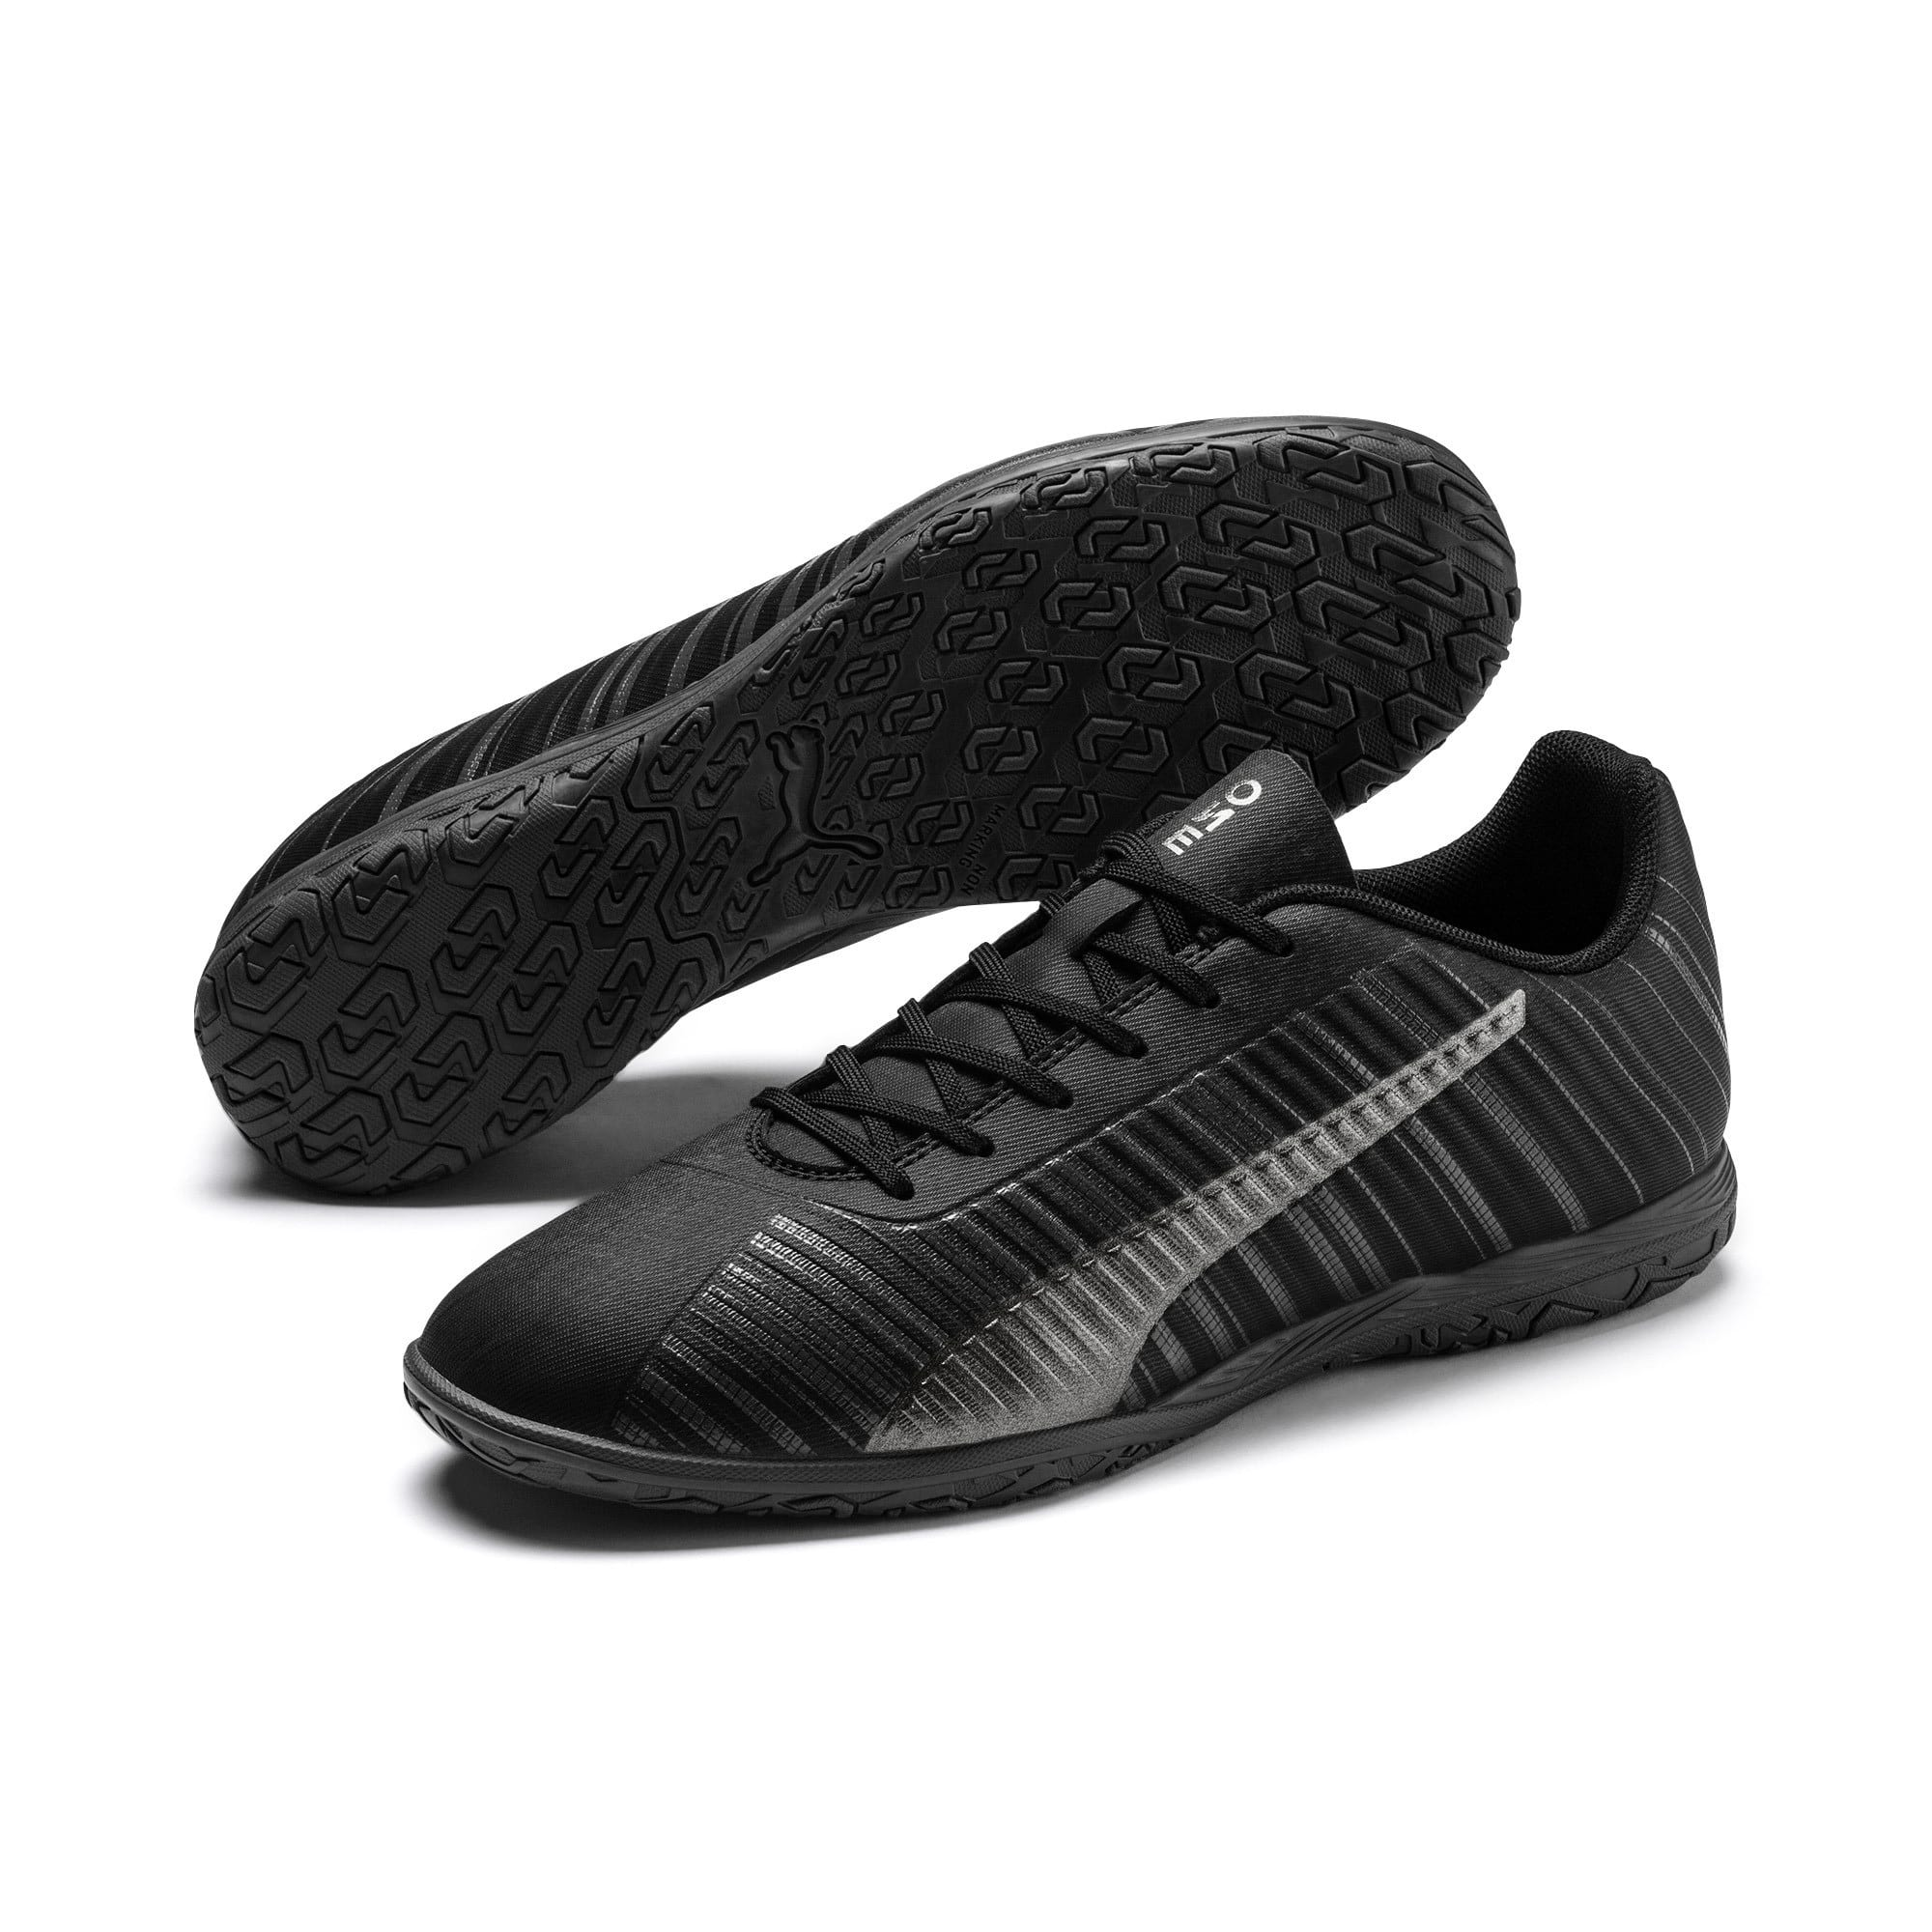 Thumbnail 3 of PUMA ONE 5.4 IT Men's Soccer Shoes, Black-Black-Puma Aged Silver, medium